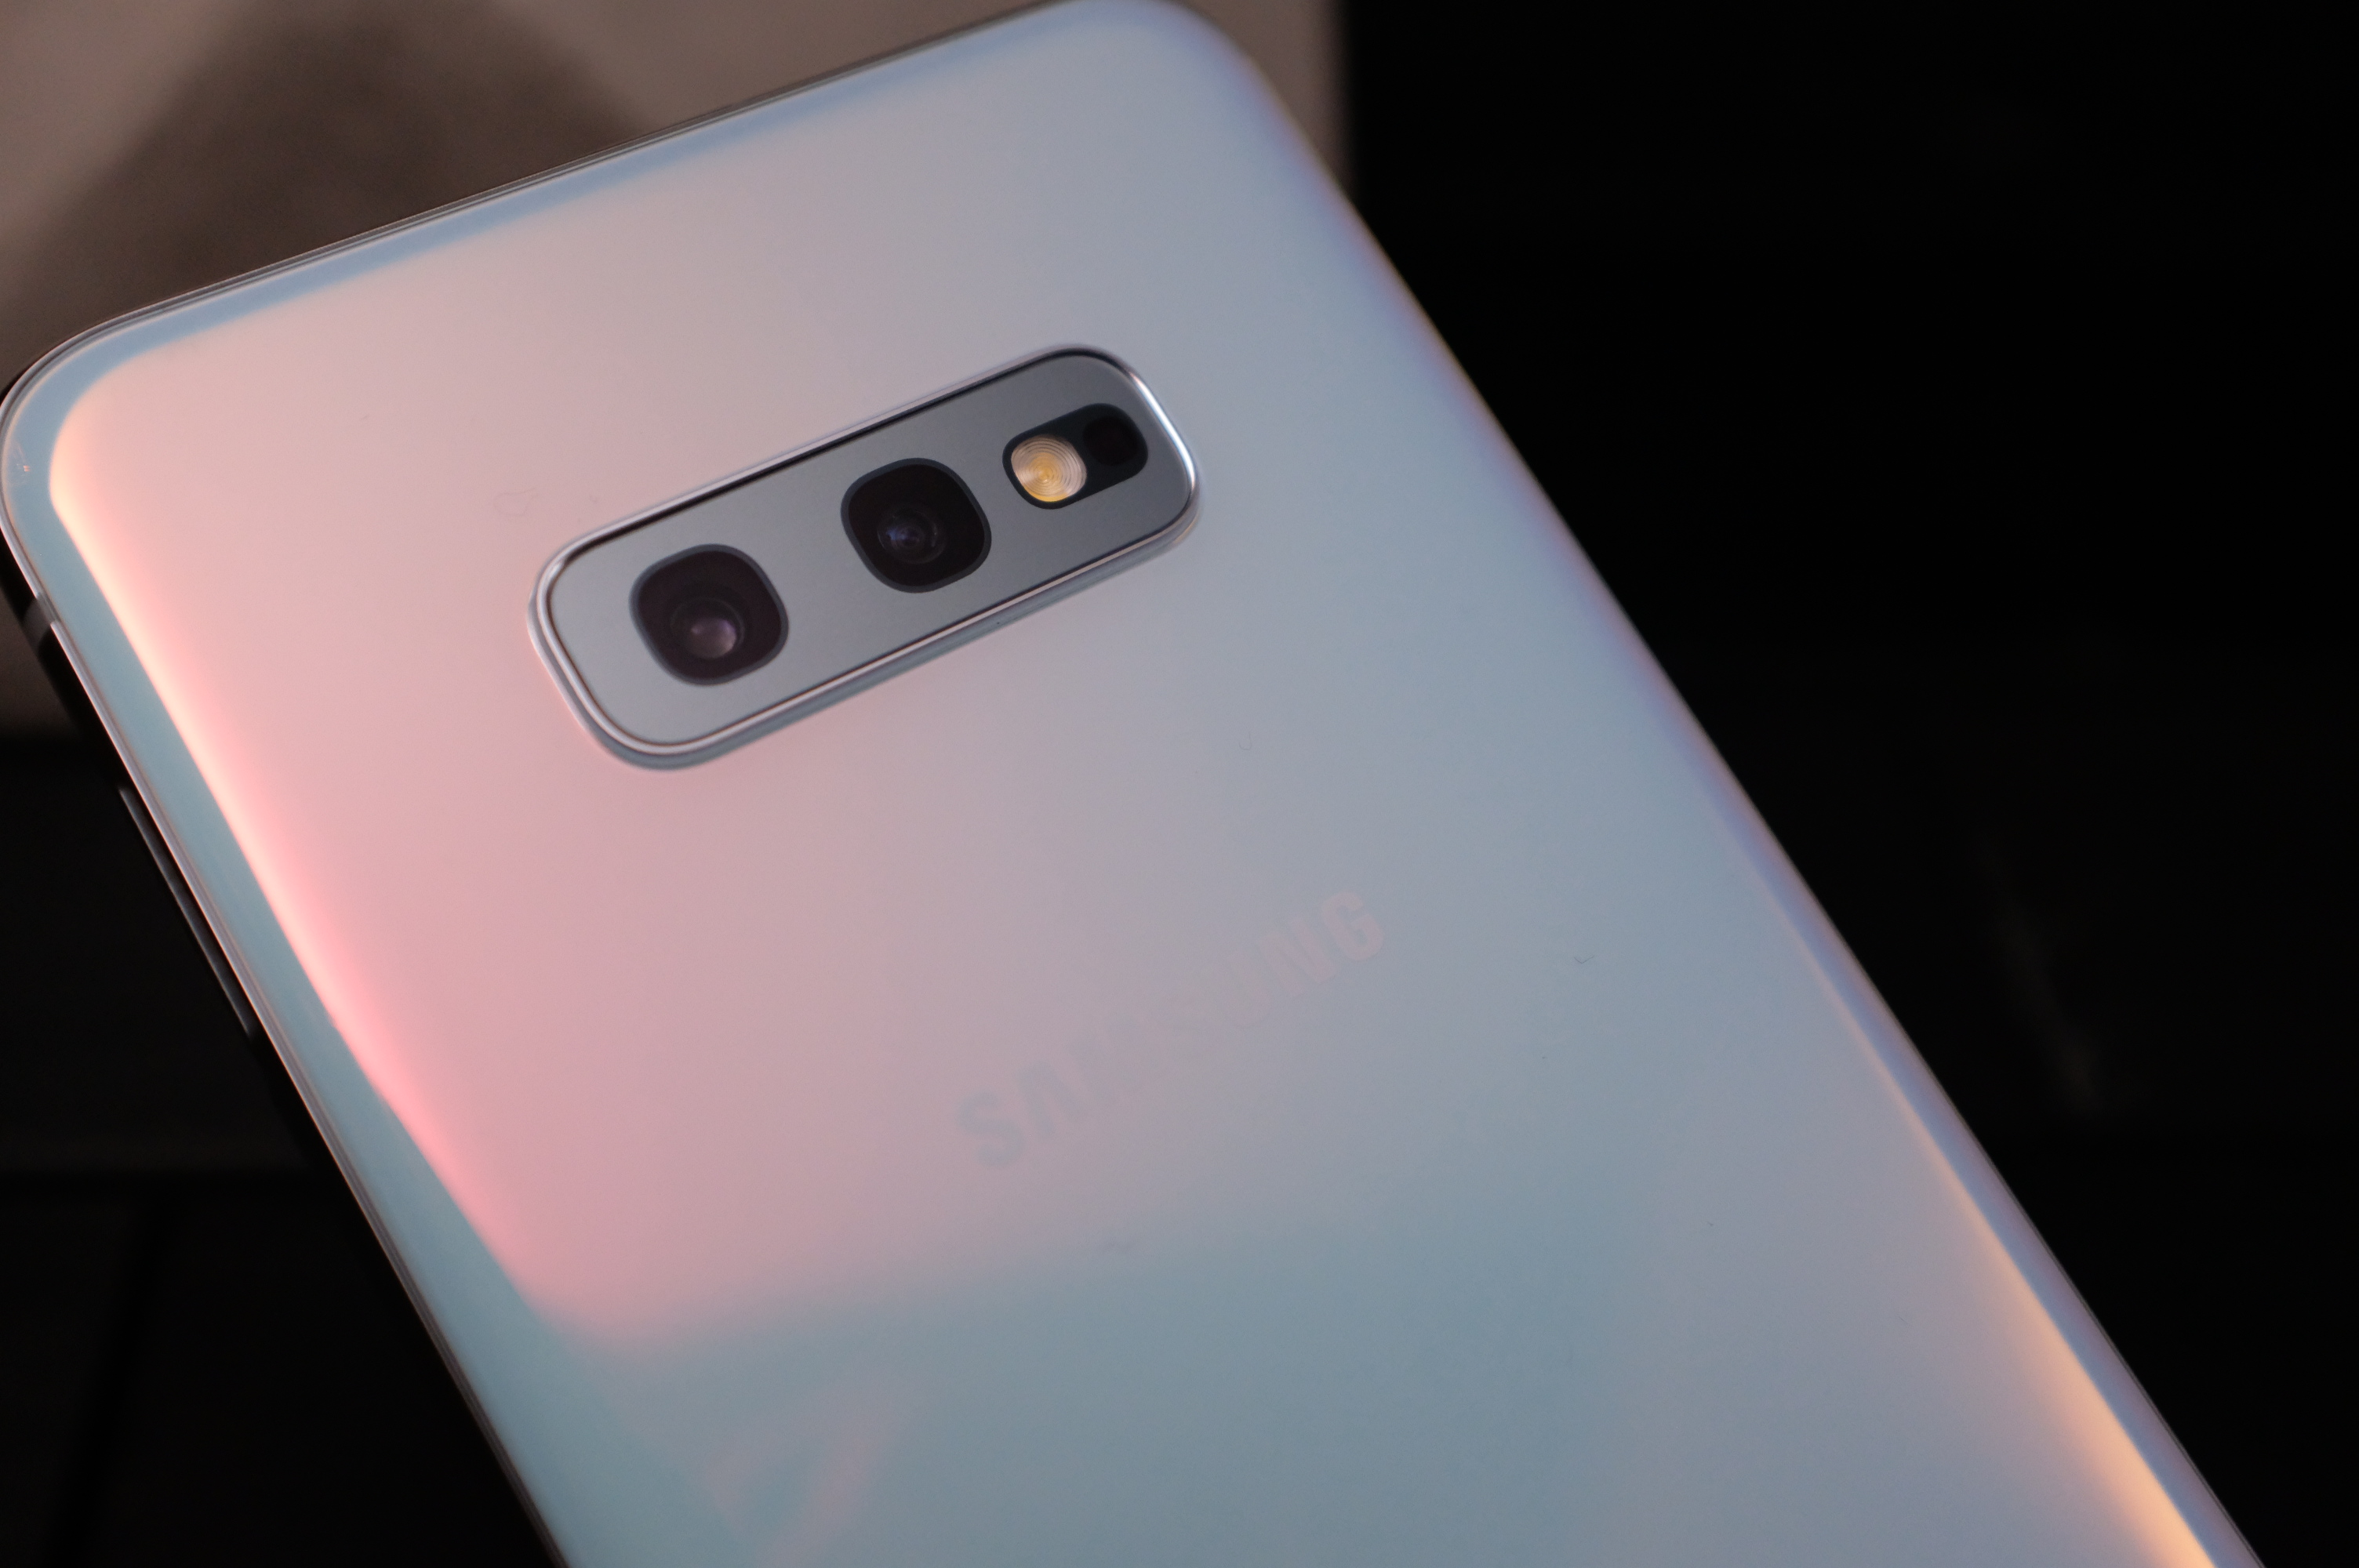 The Samsung S10's cameras get ultra-wide-angle lenses and